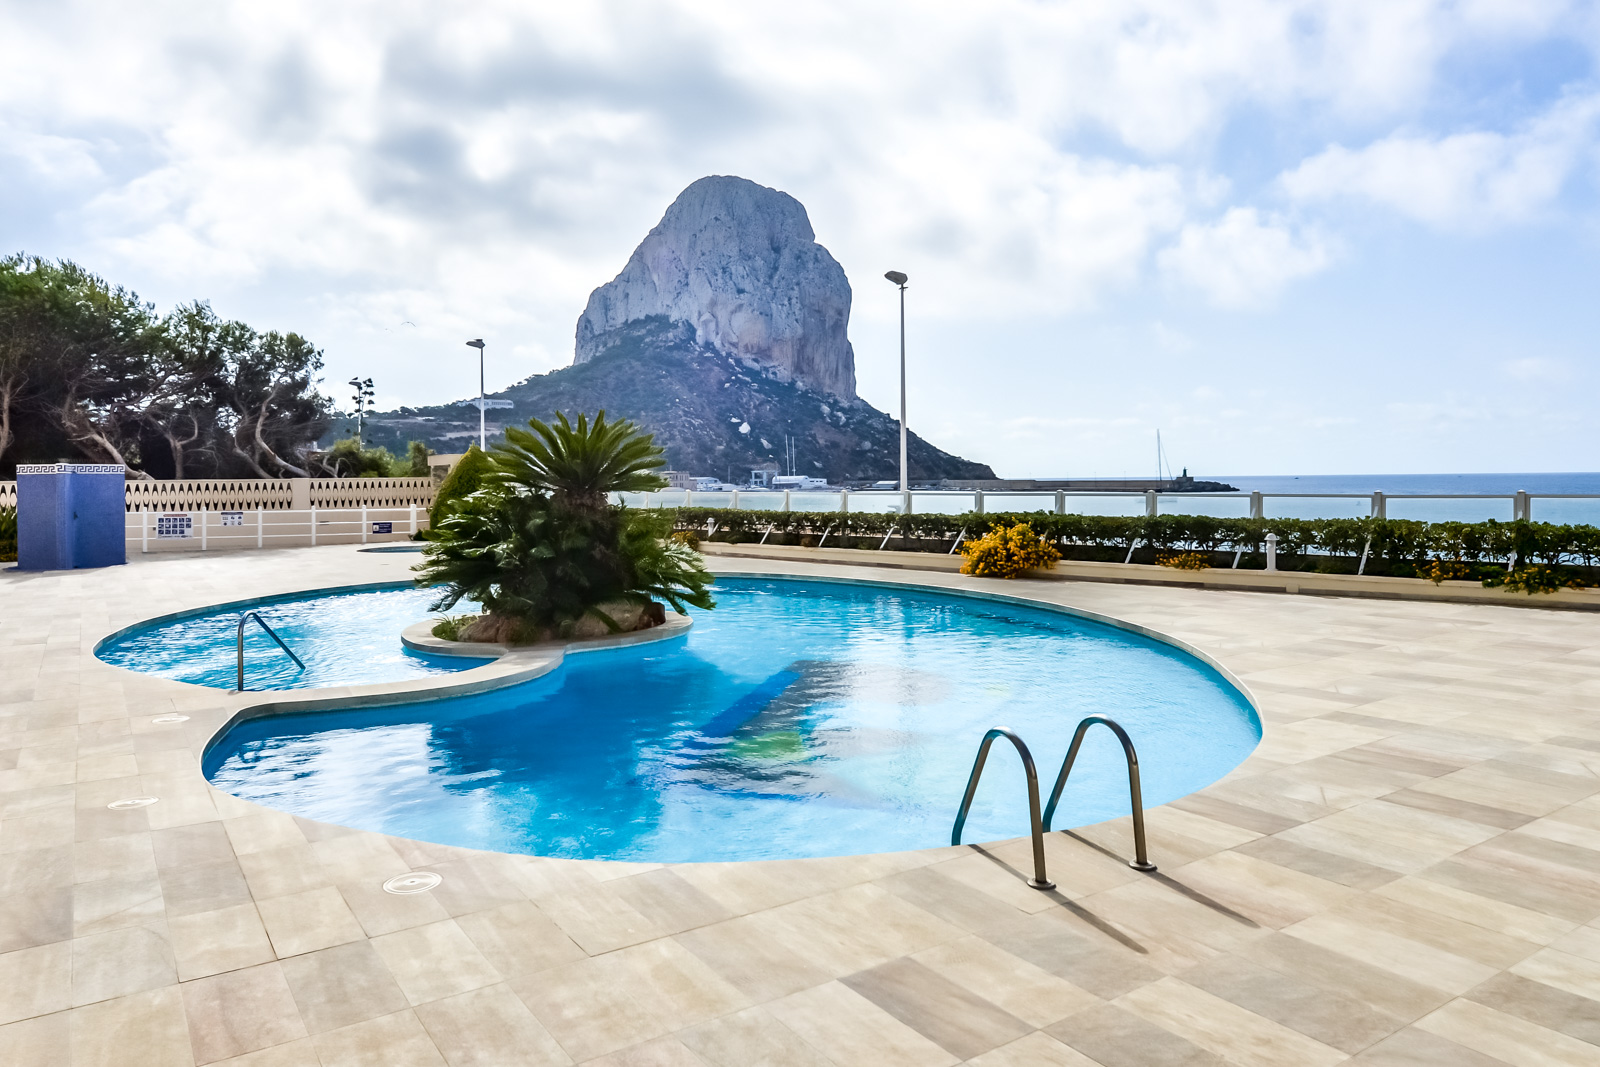 Apartamento Rubino 5C, Apartment  with communal pool in Calpe, on the Costa Blanca, Spain for 8 persons.....